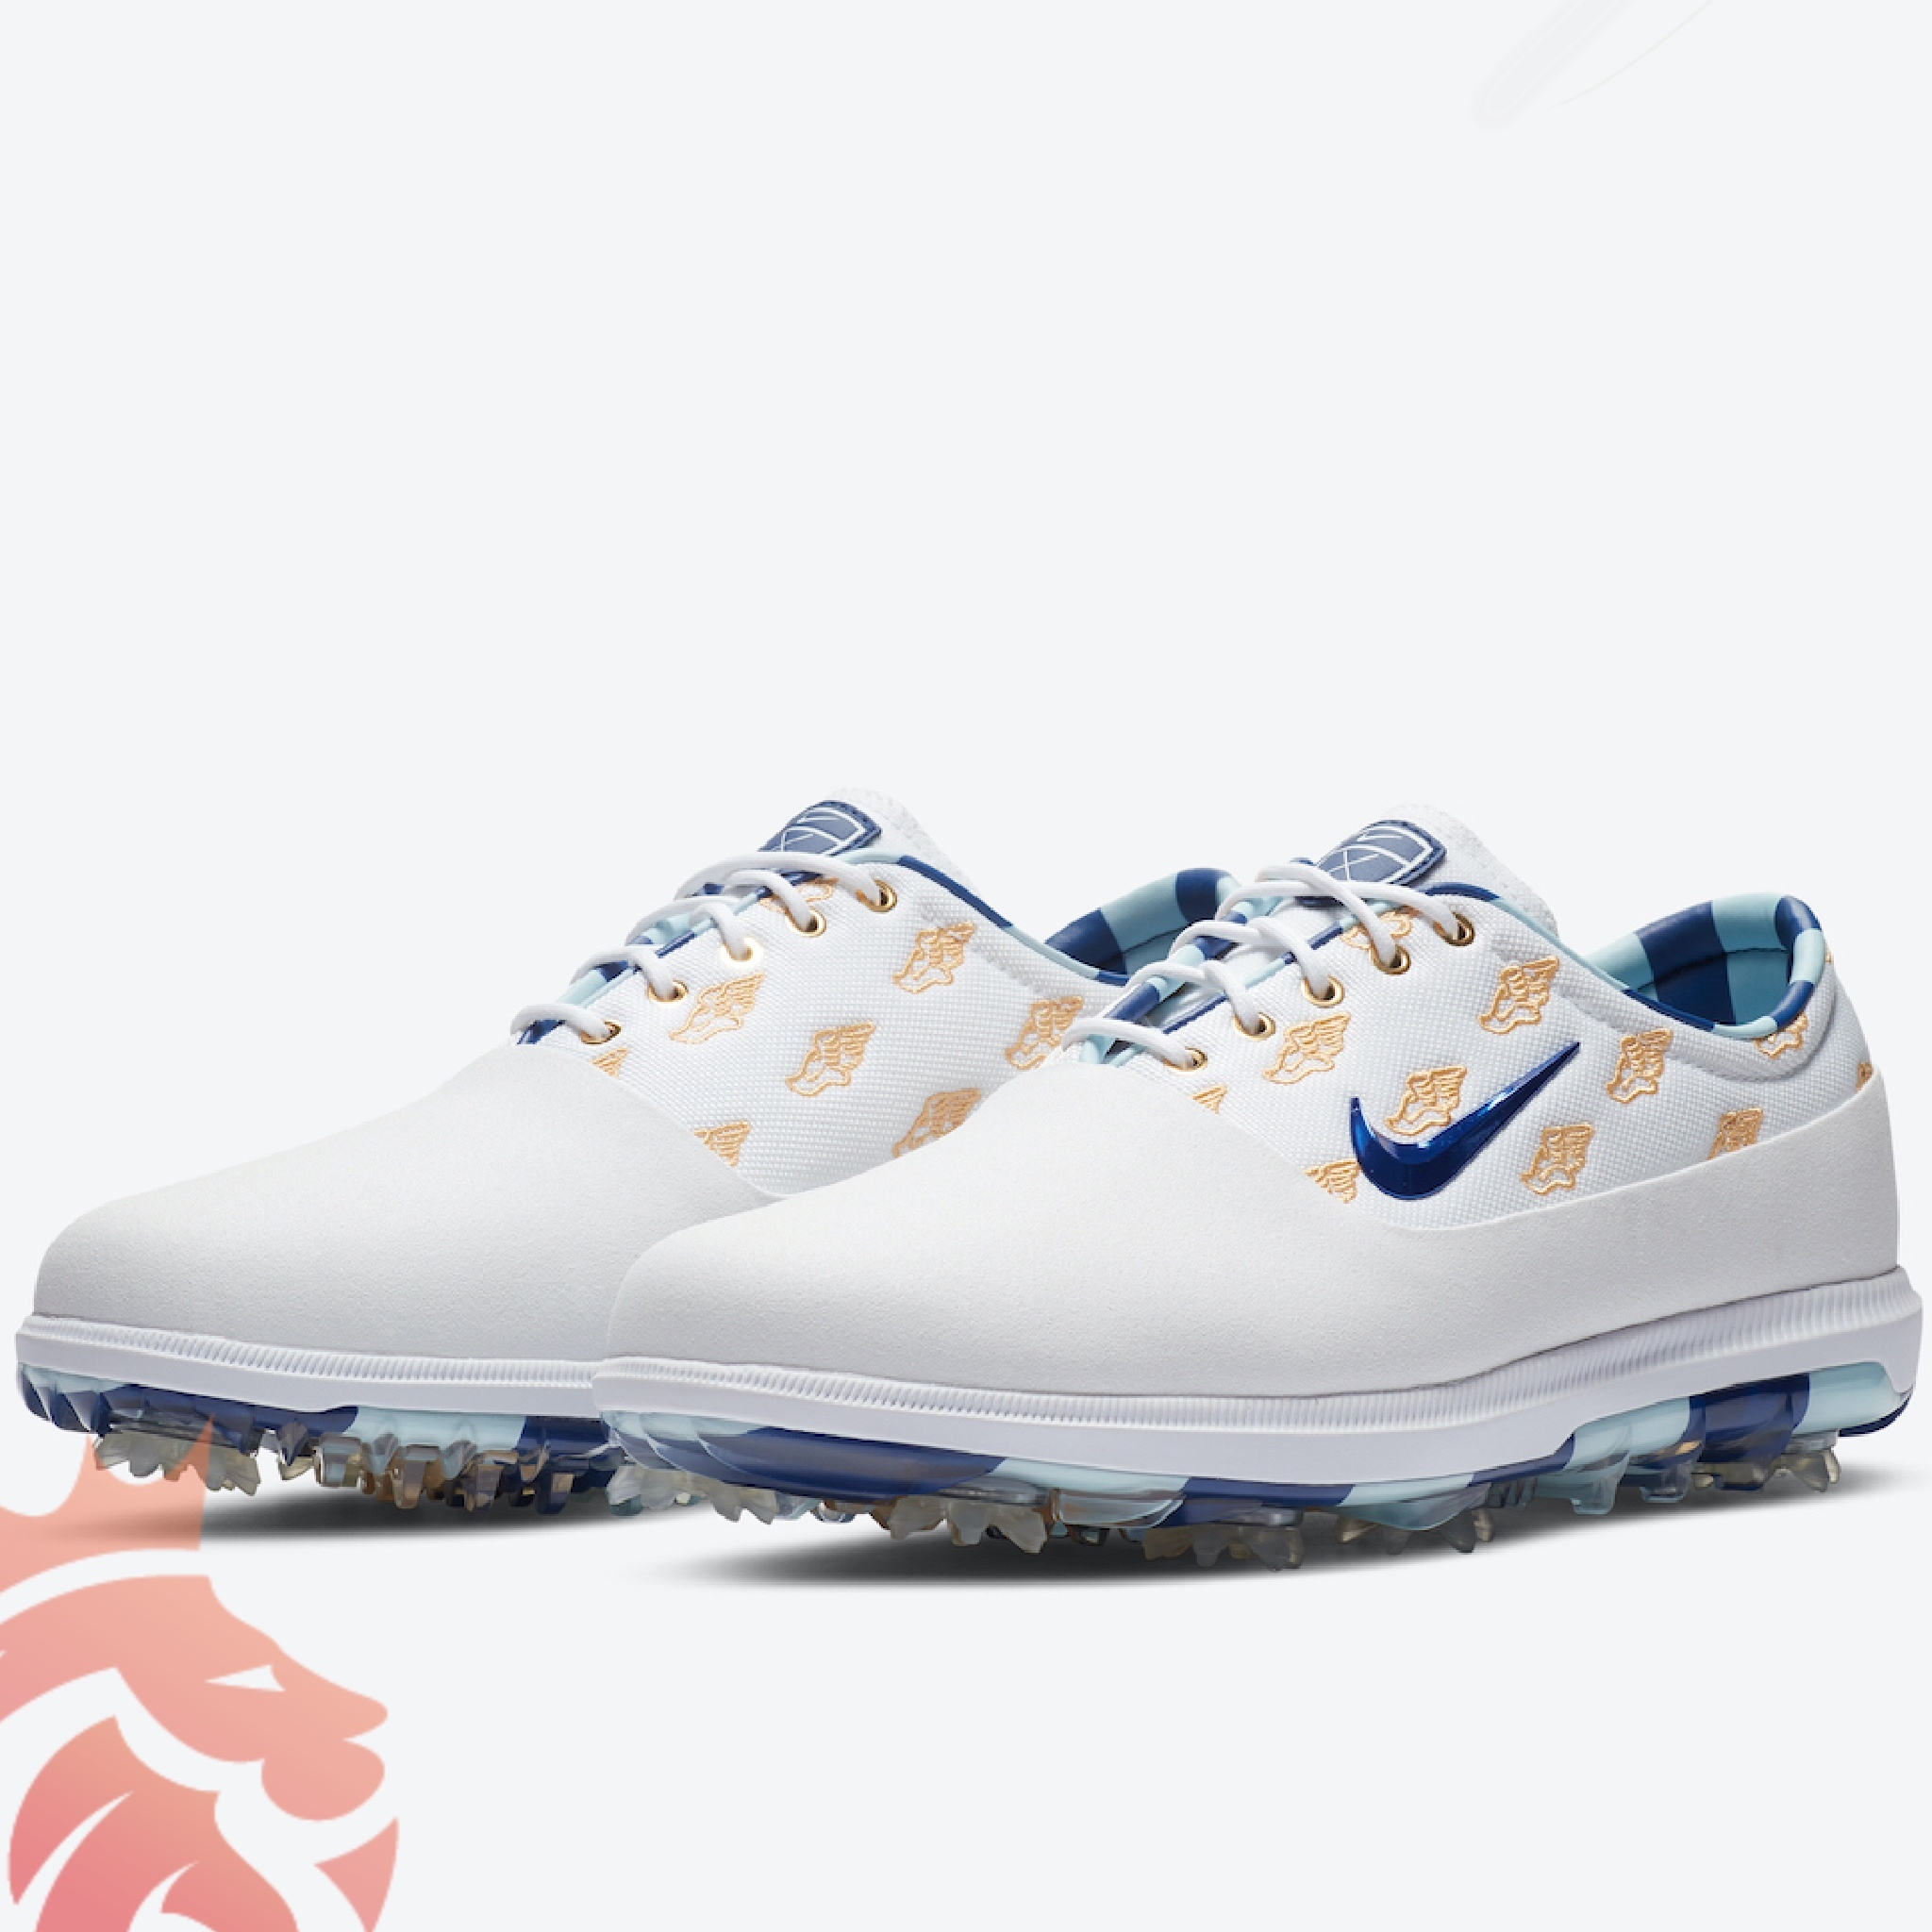 "Nike Zoom Victory Tour Golf ""Wing It"" CK1213-100 White/Ice Blue/Grape Ice/Gold"